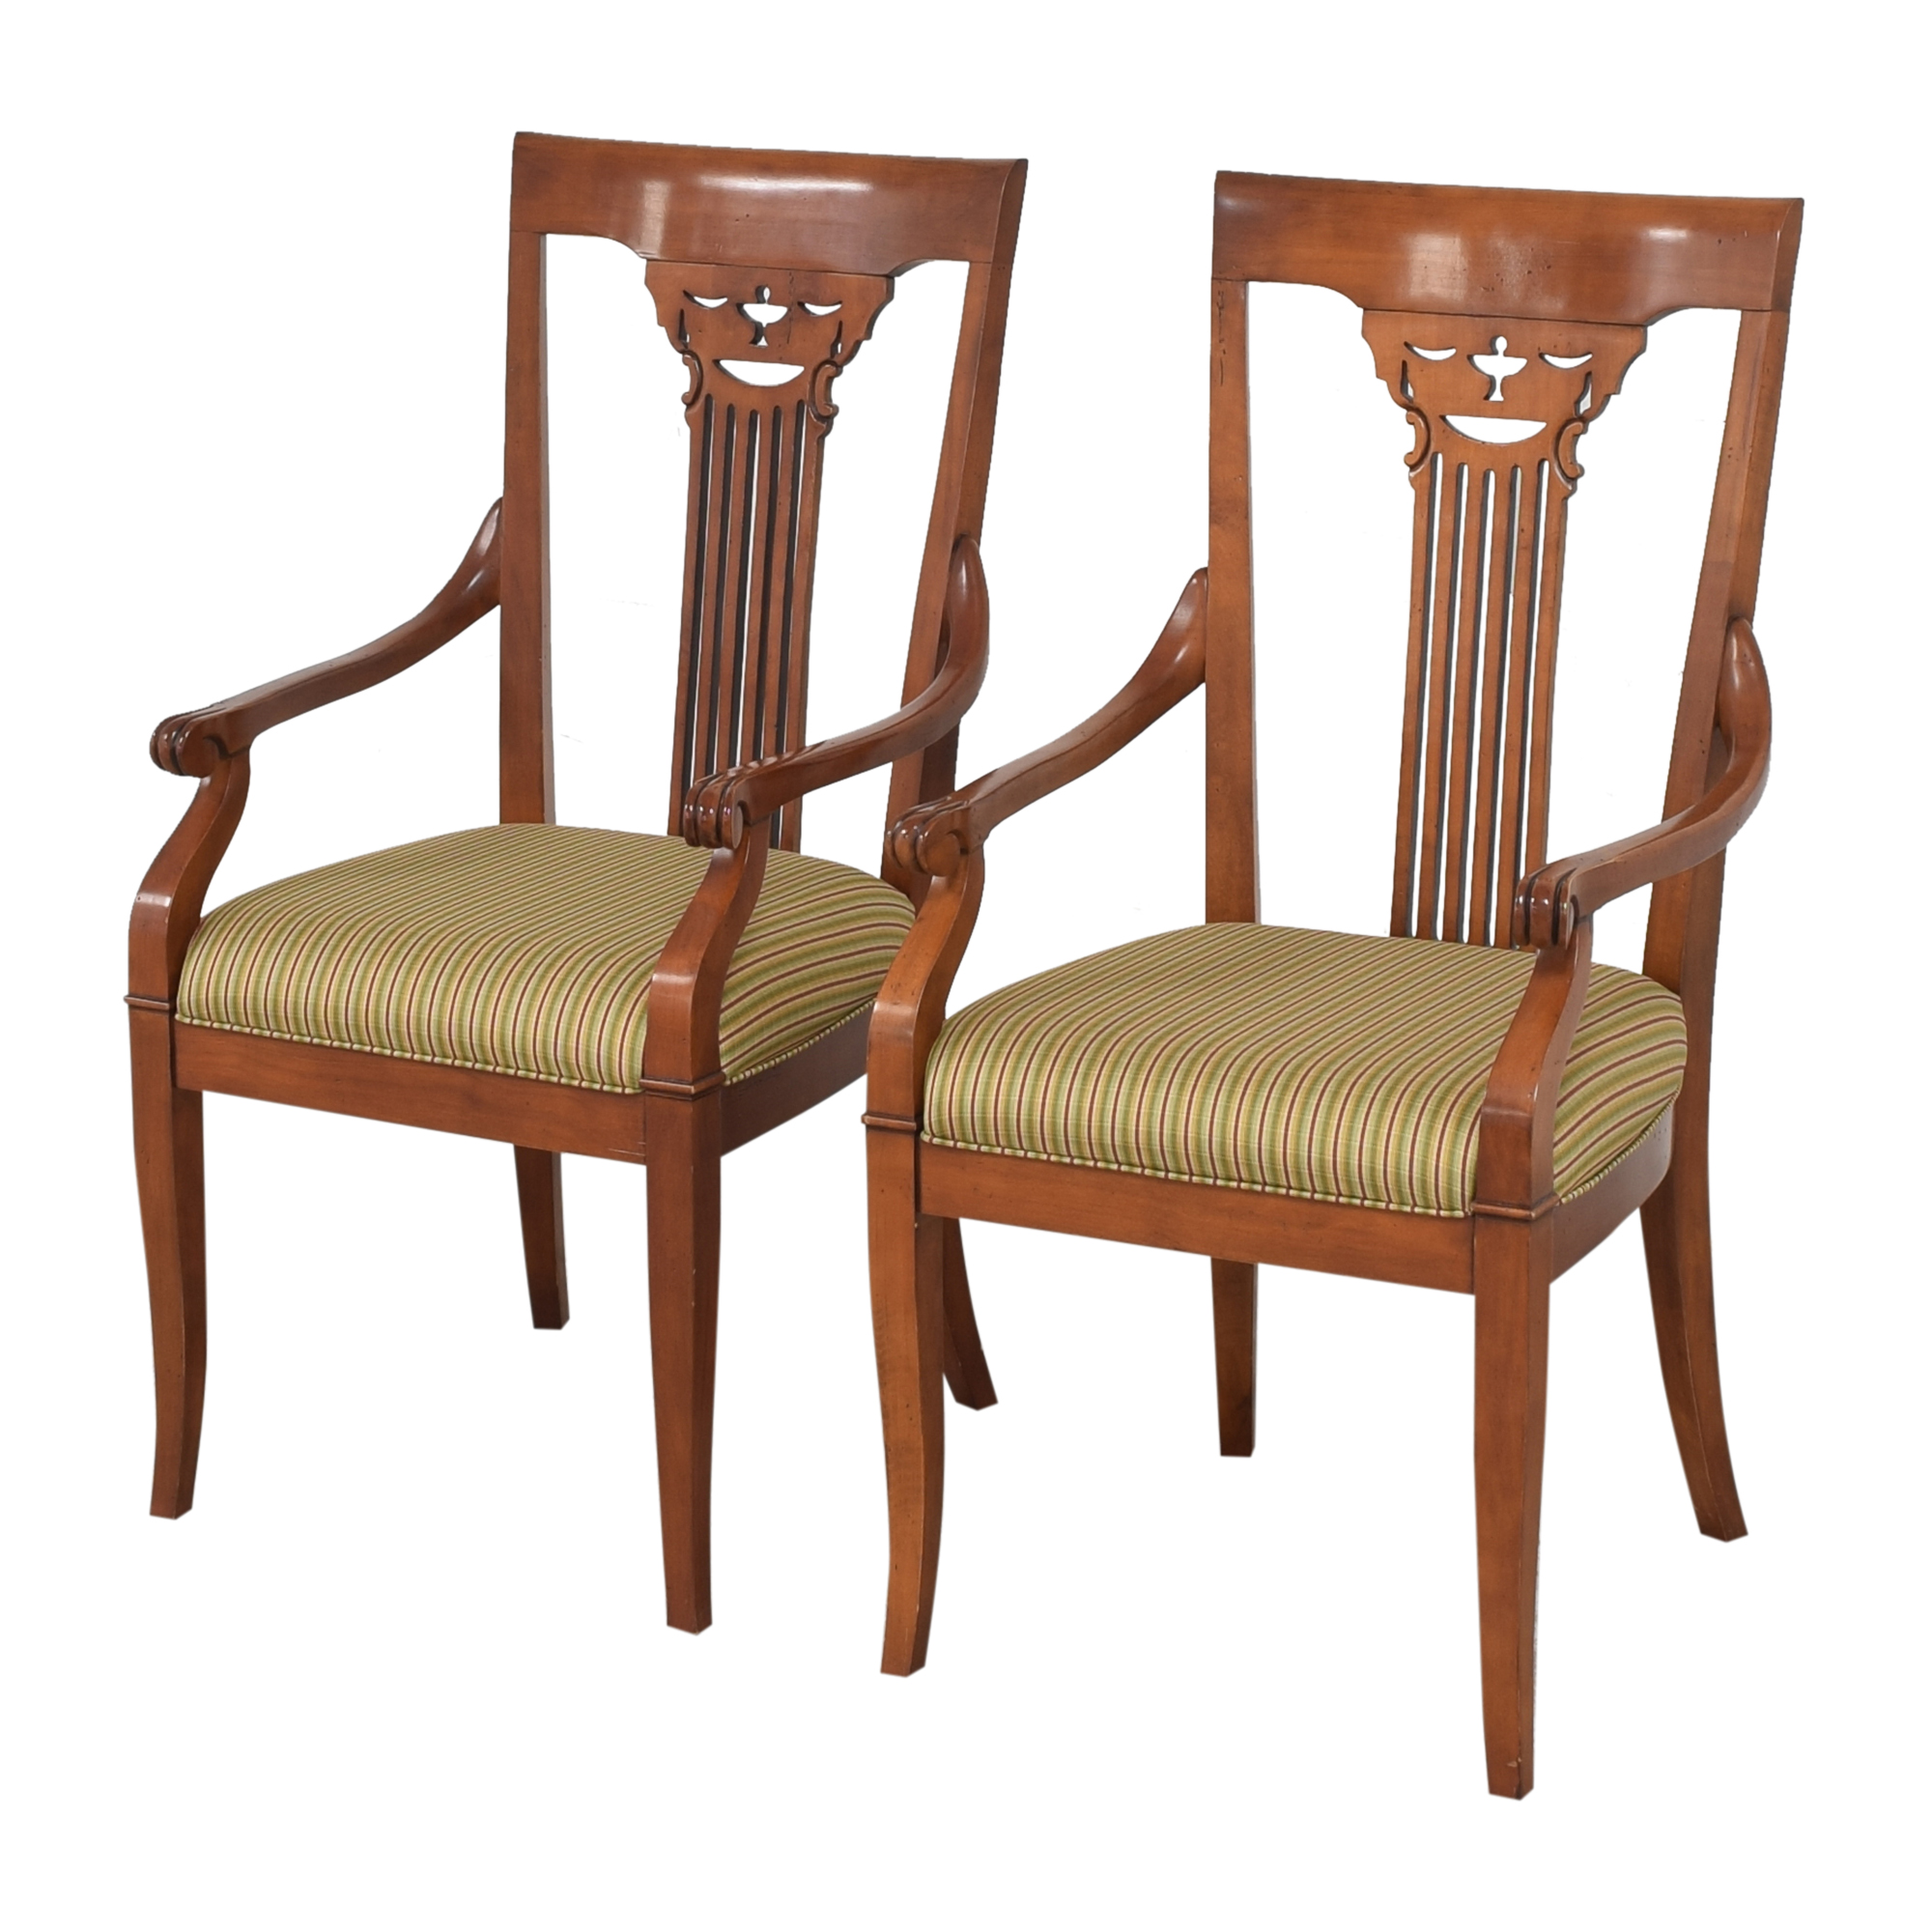 Harden Harden Dining Arm Chairs used